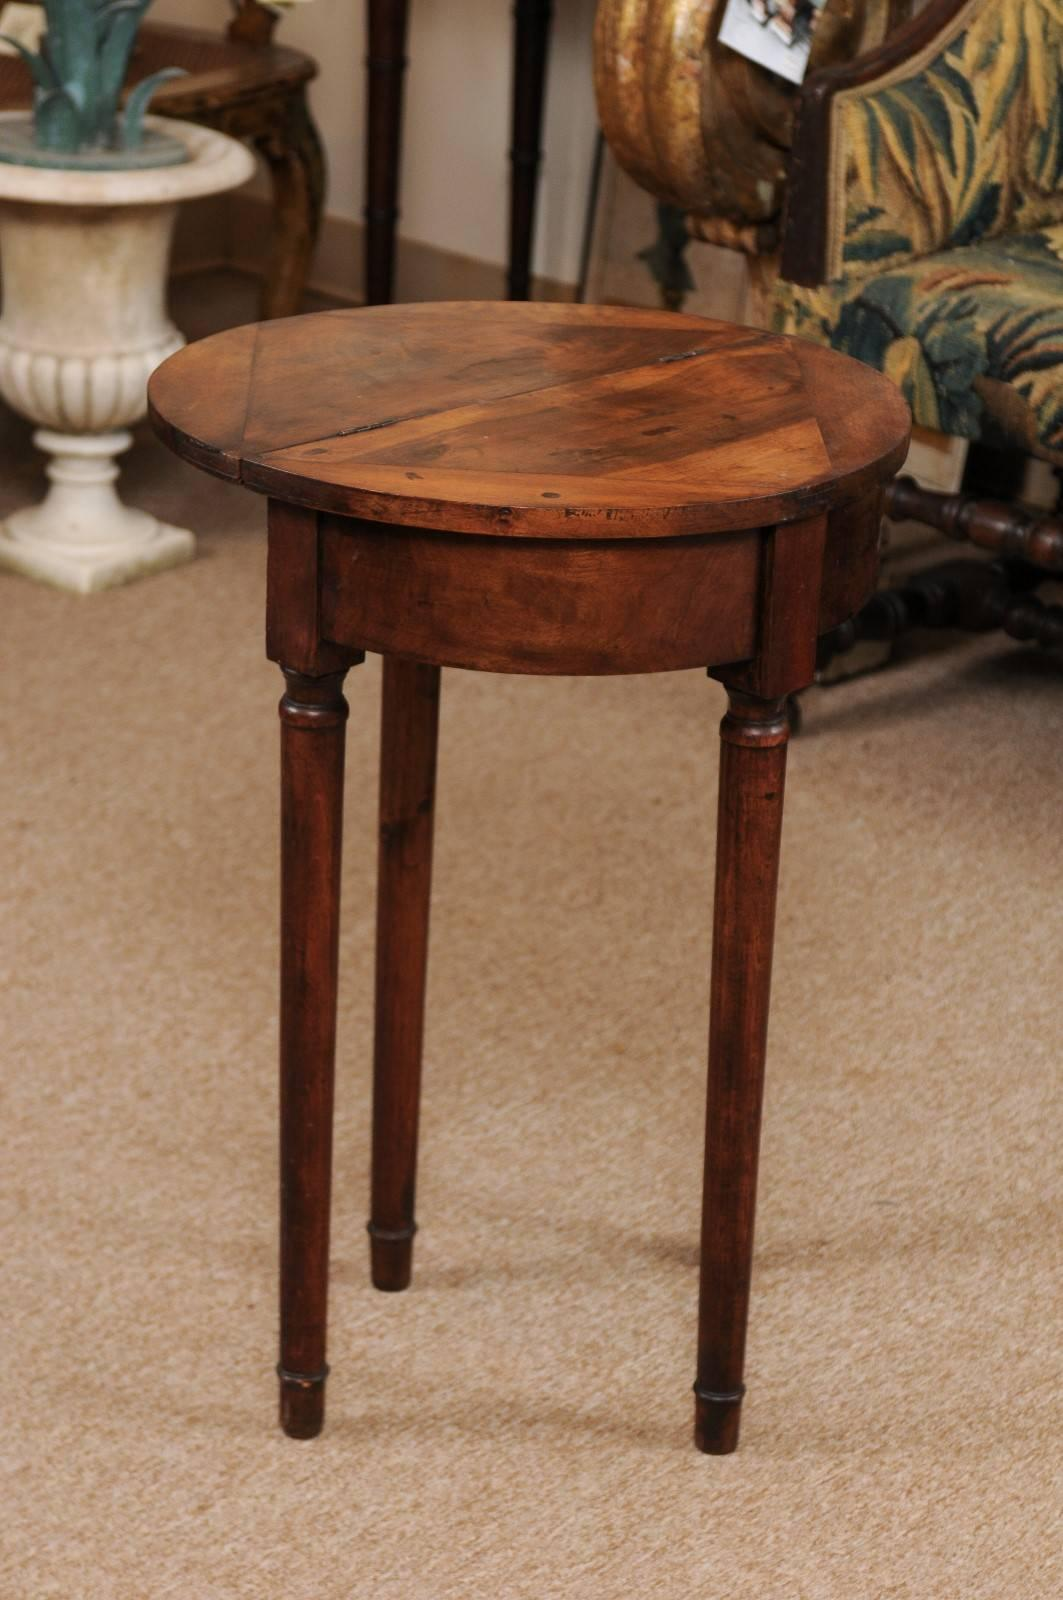 Convertible Demilune Game Table With Flip Top, Italy, Circa 1890 For Sale 1